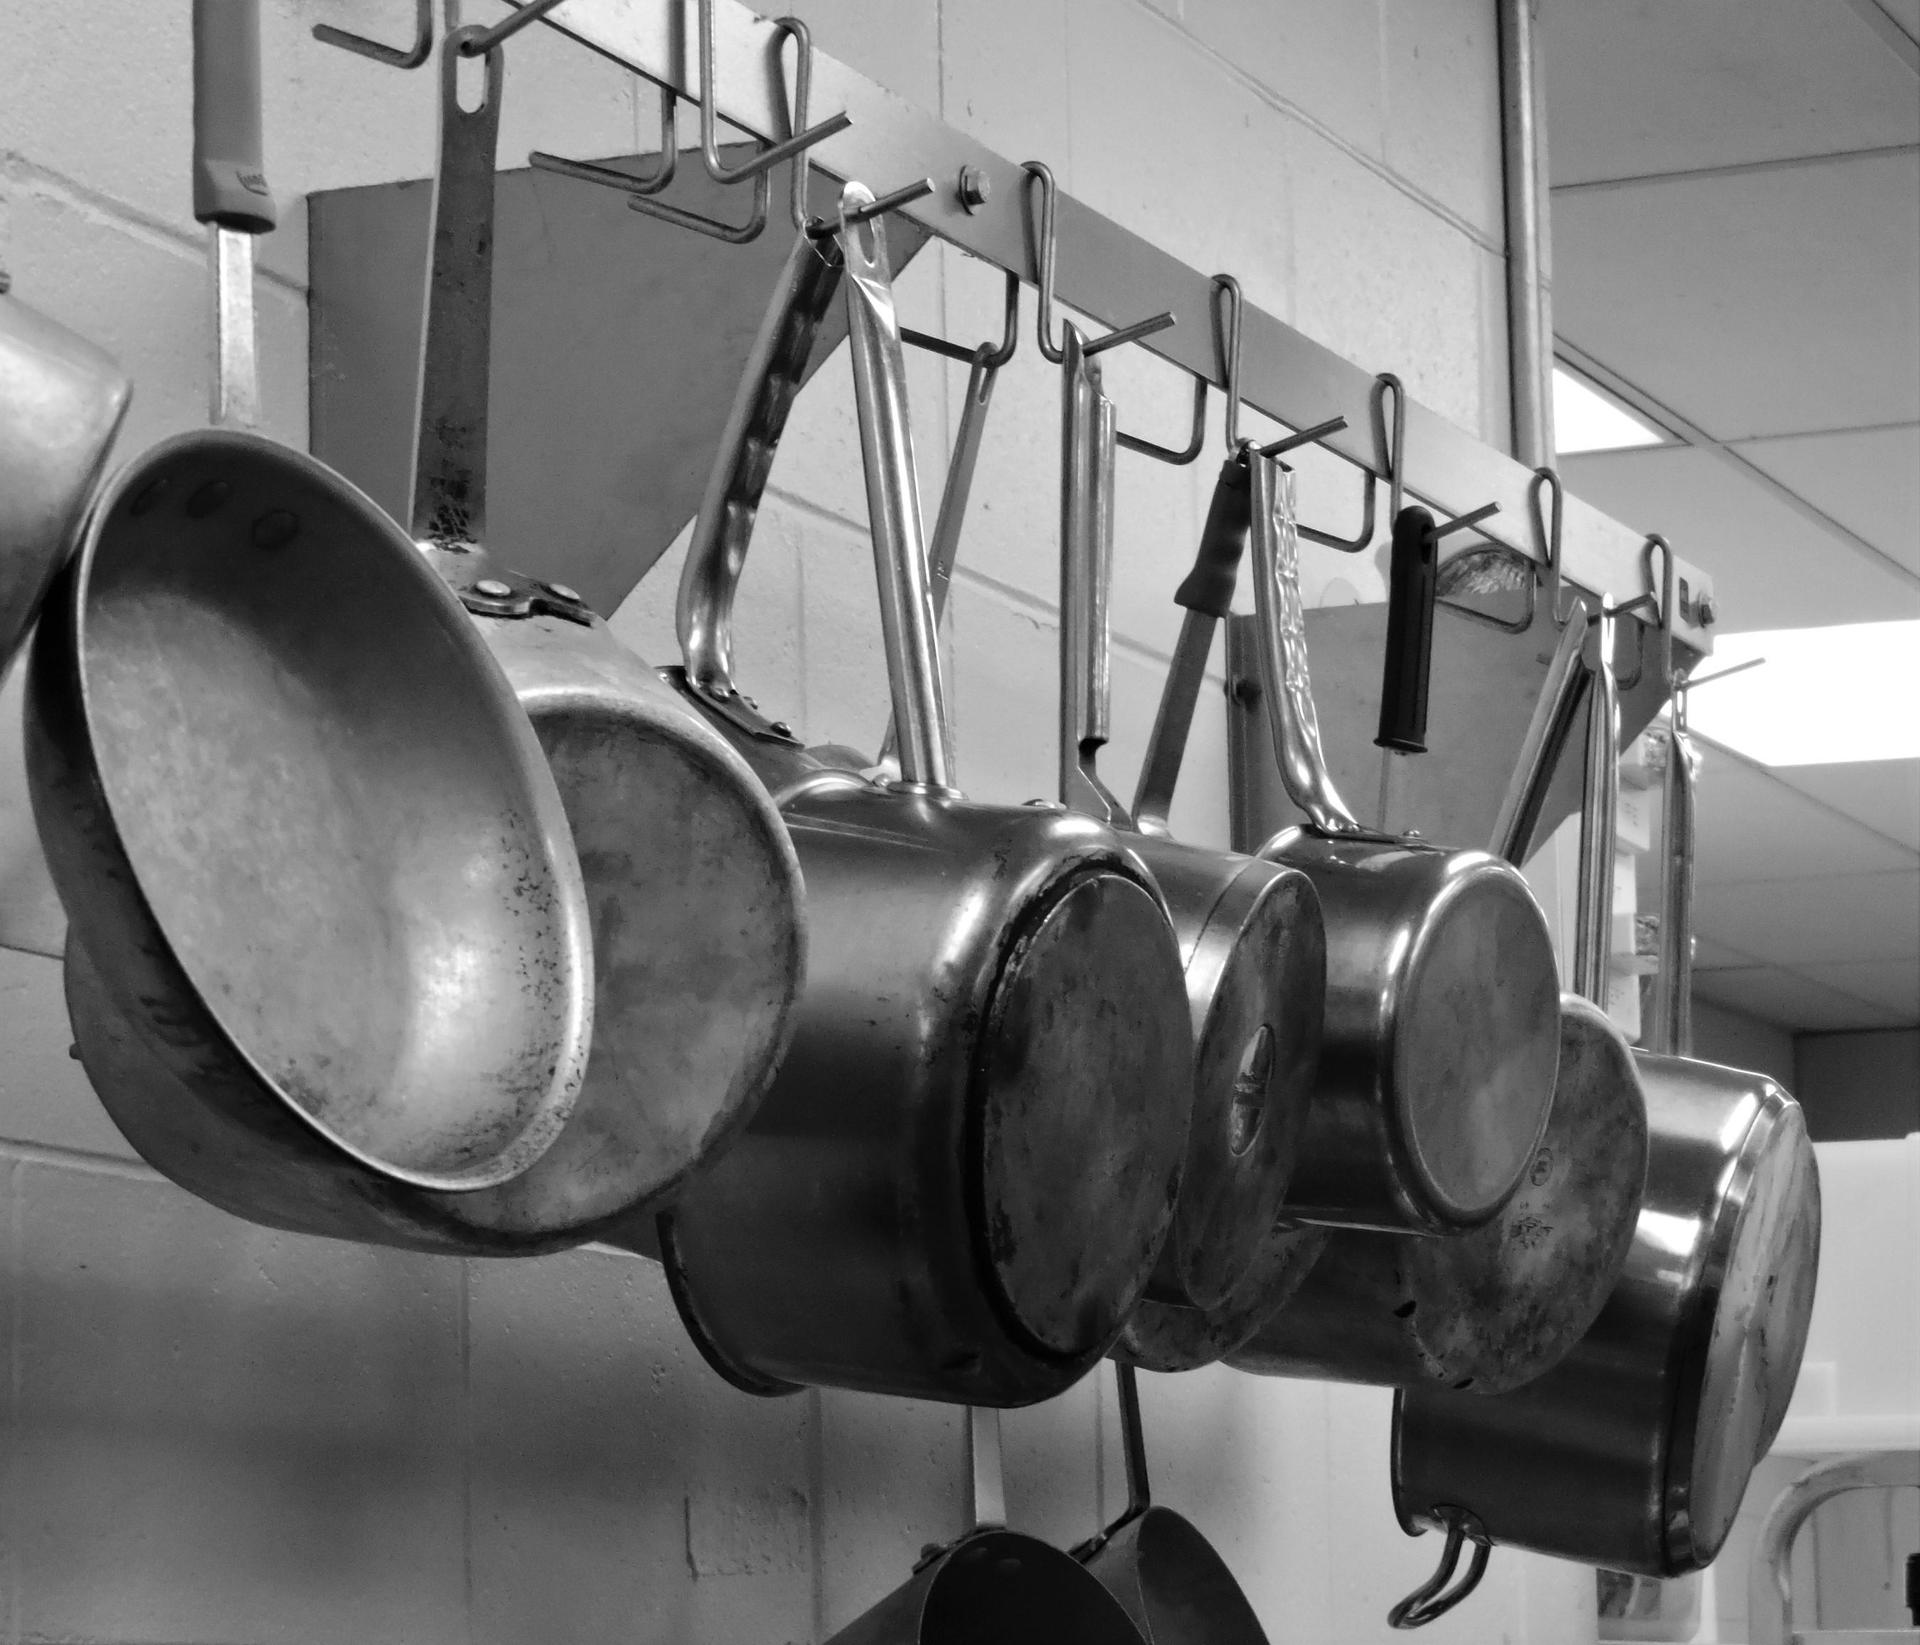 Pans hanging from rack